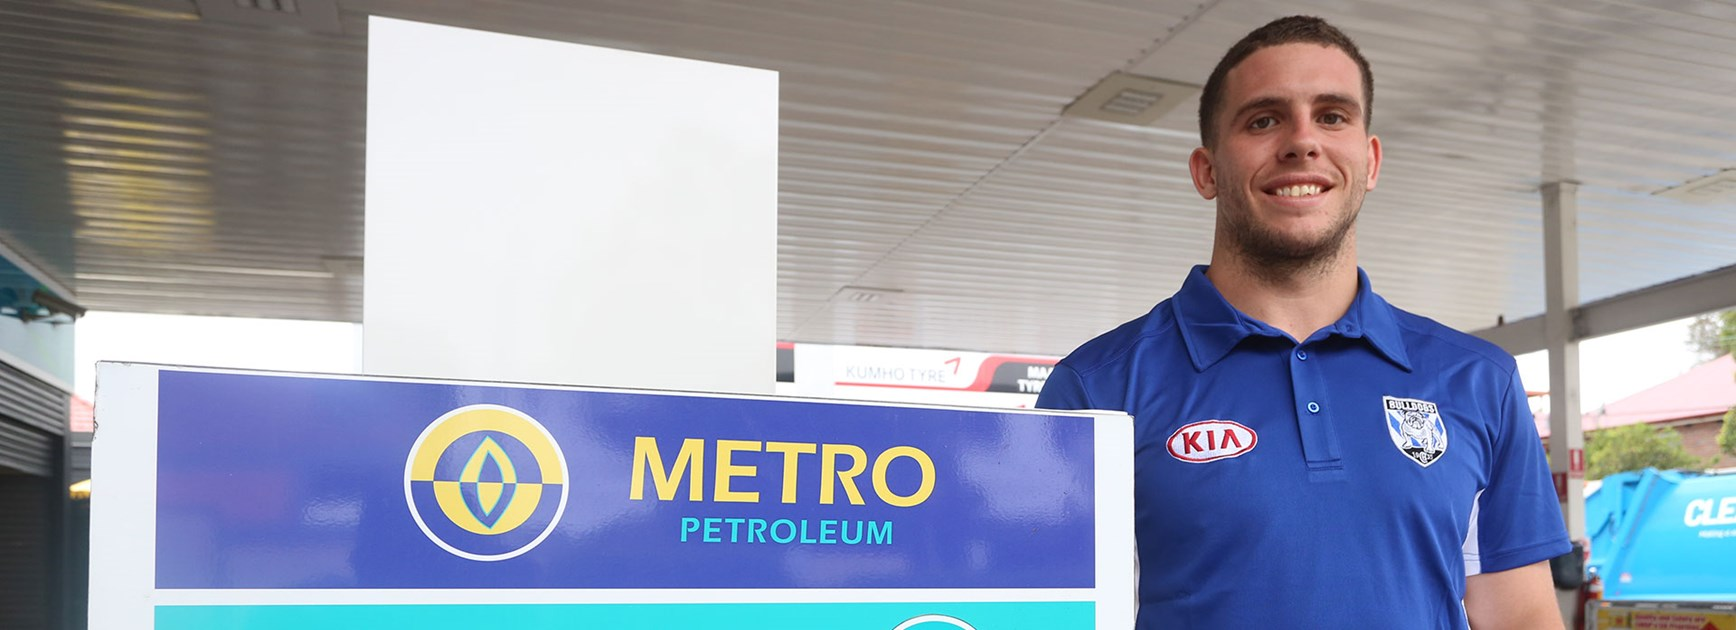 Metro Petroleum Yagoona Player Appearance